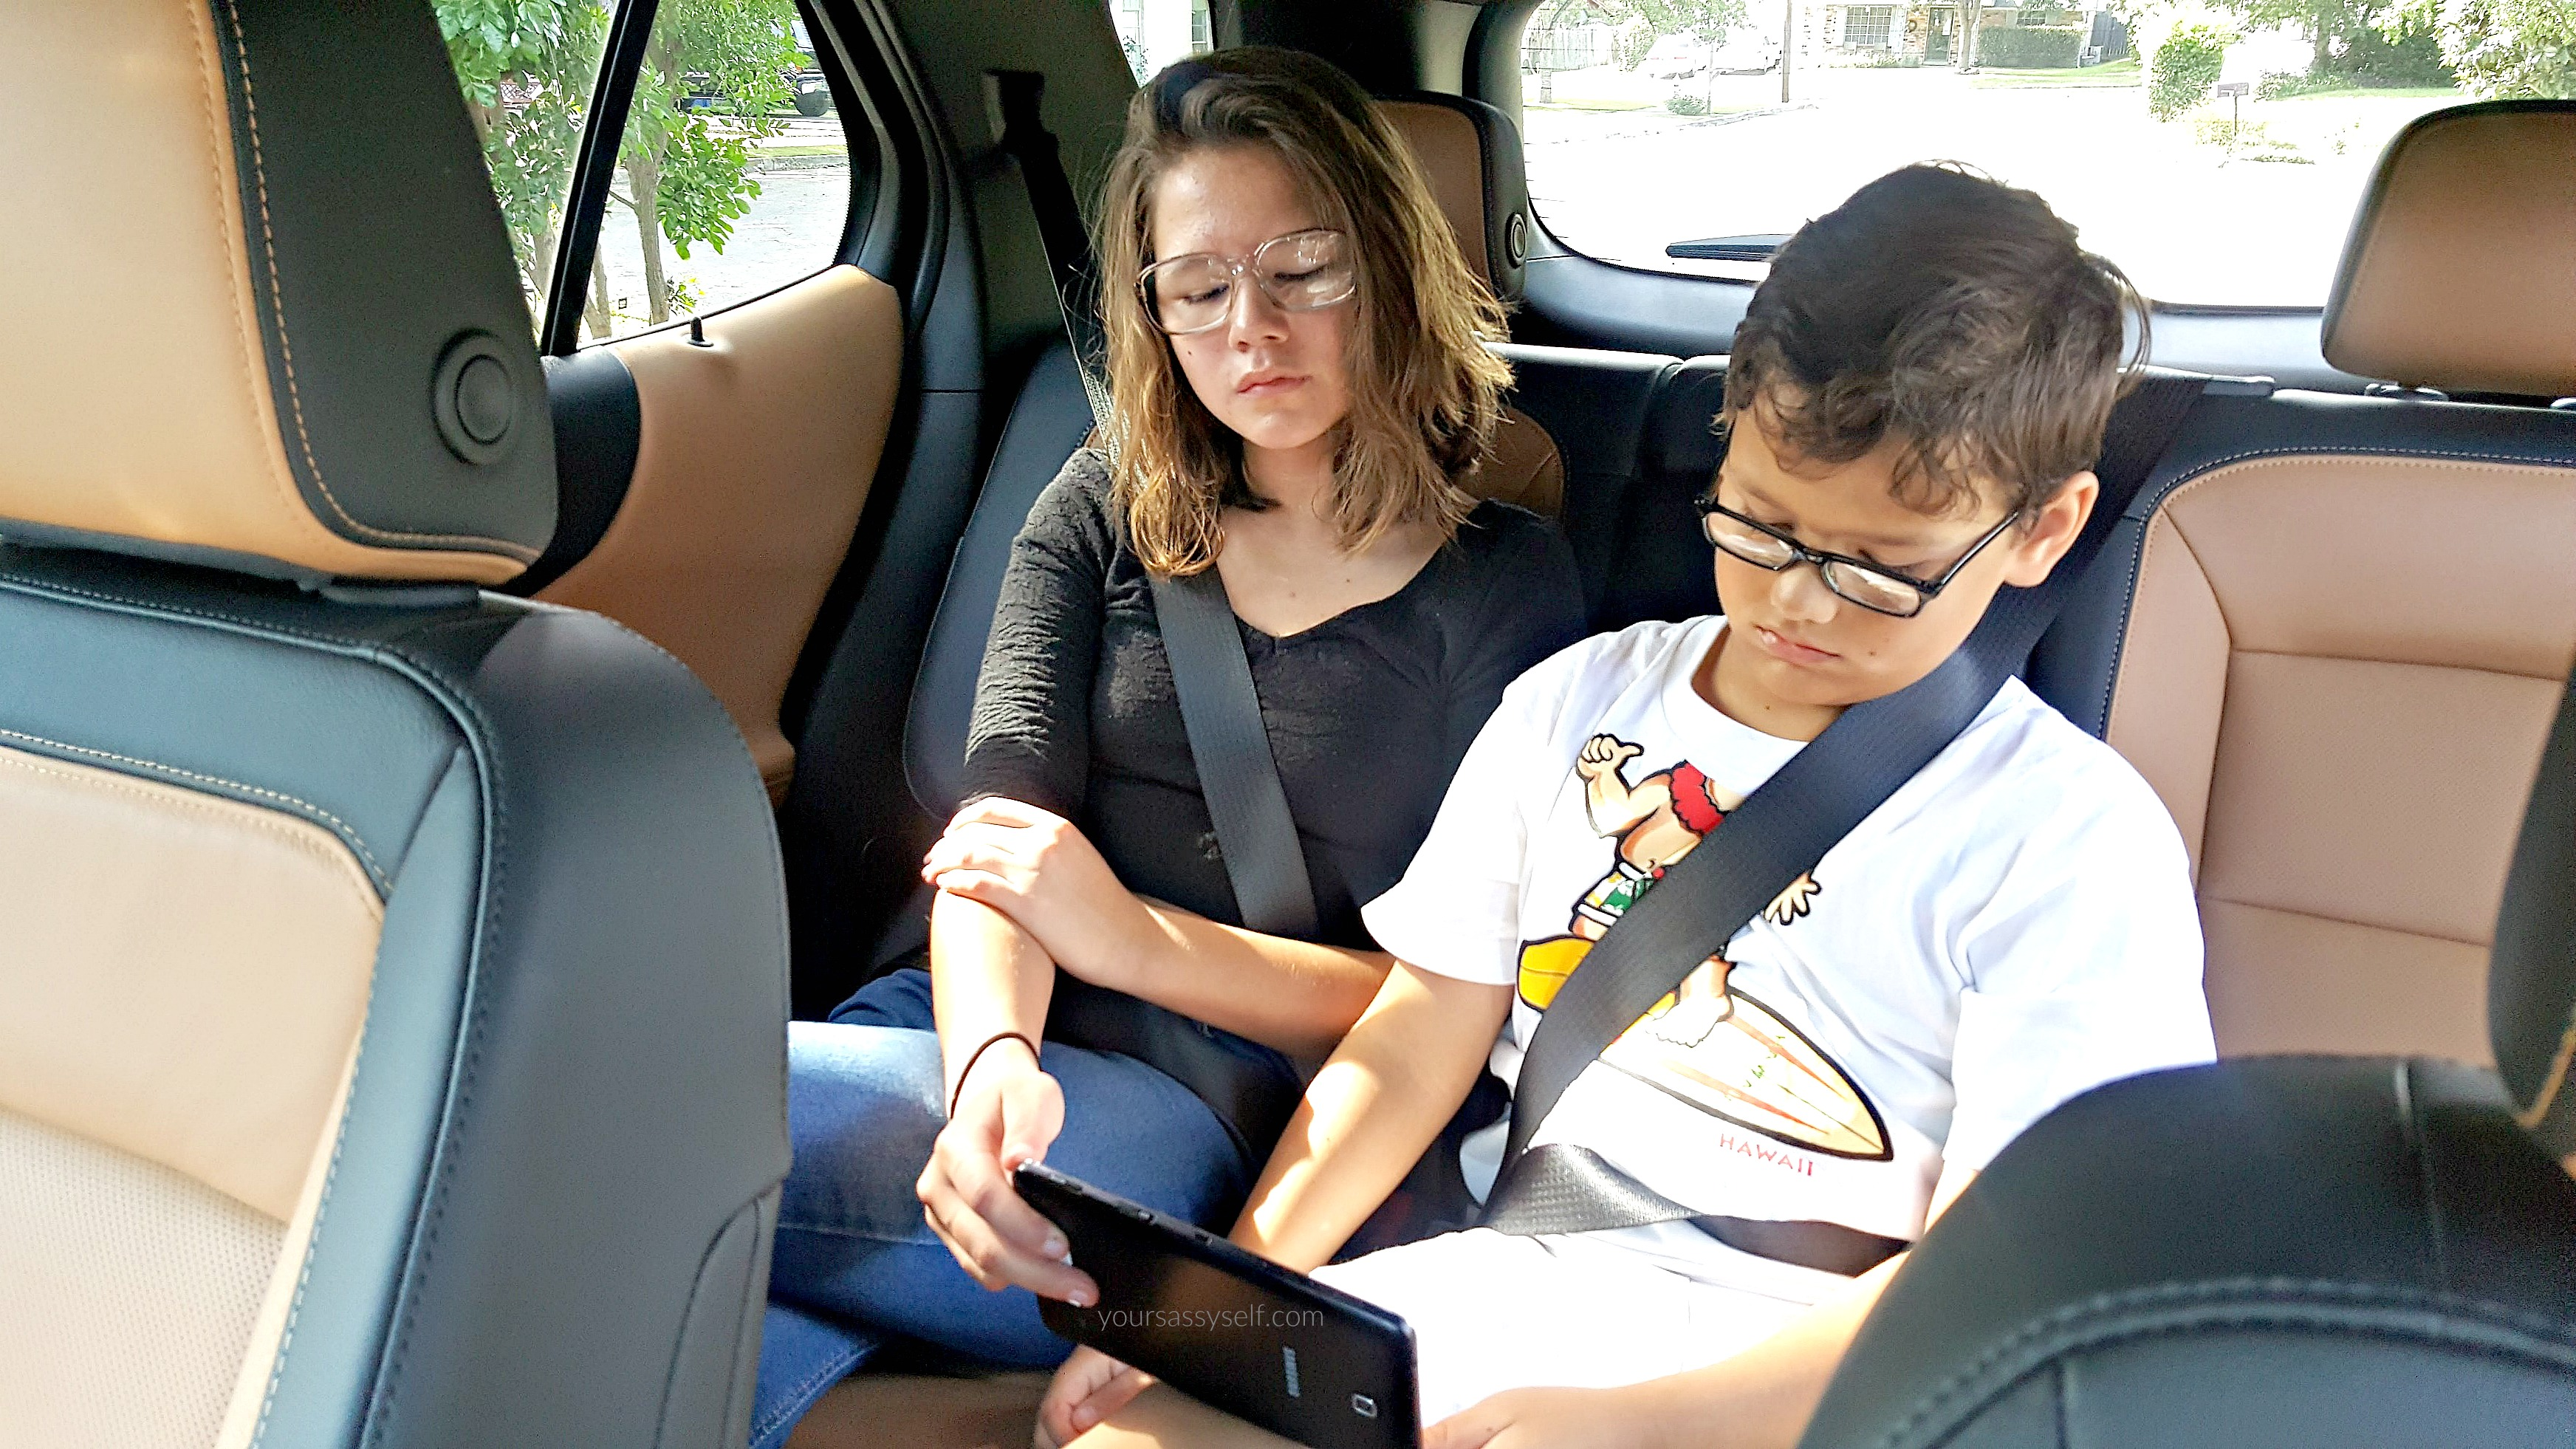 Kids on Tablet in 2018 Chevy Equinox - yoursassyself.com